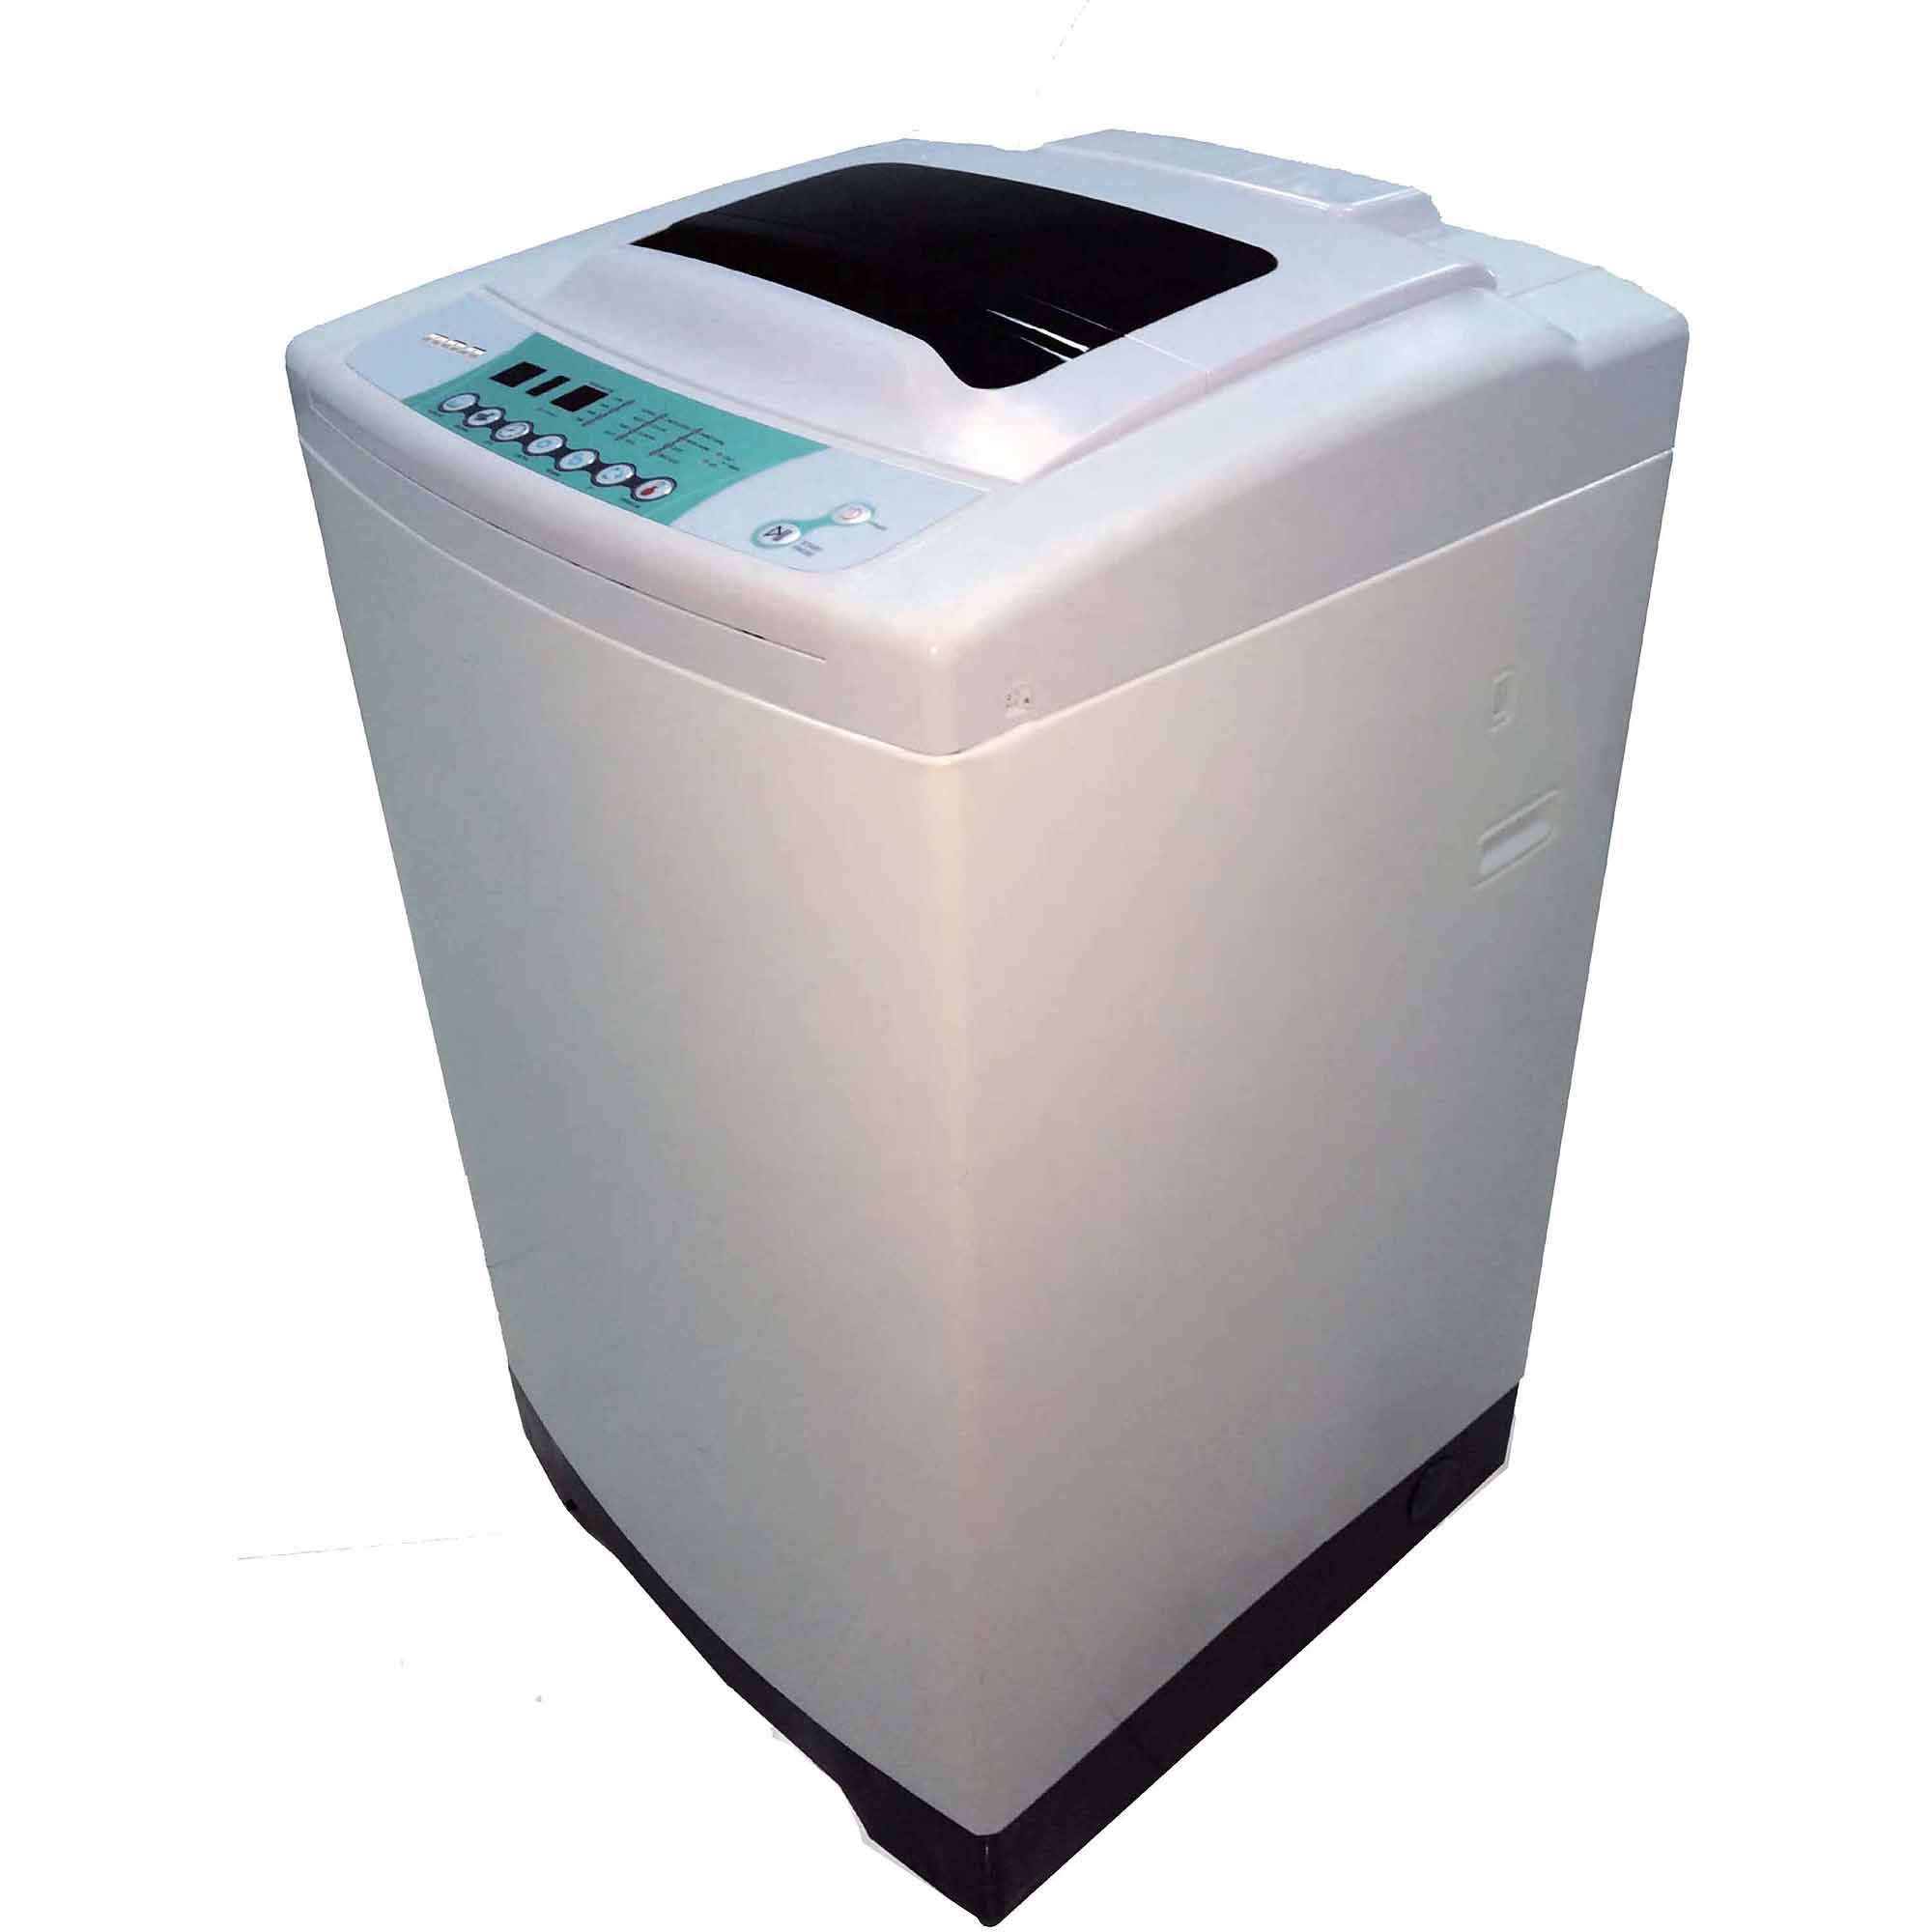 9LB MINI Washer U0026 Spin Dryer Portable Compact Laundry Combo RV   Walmart.com